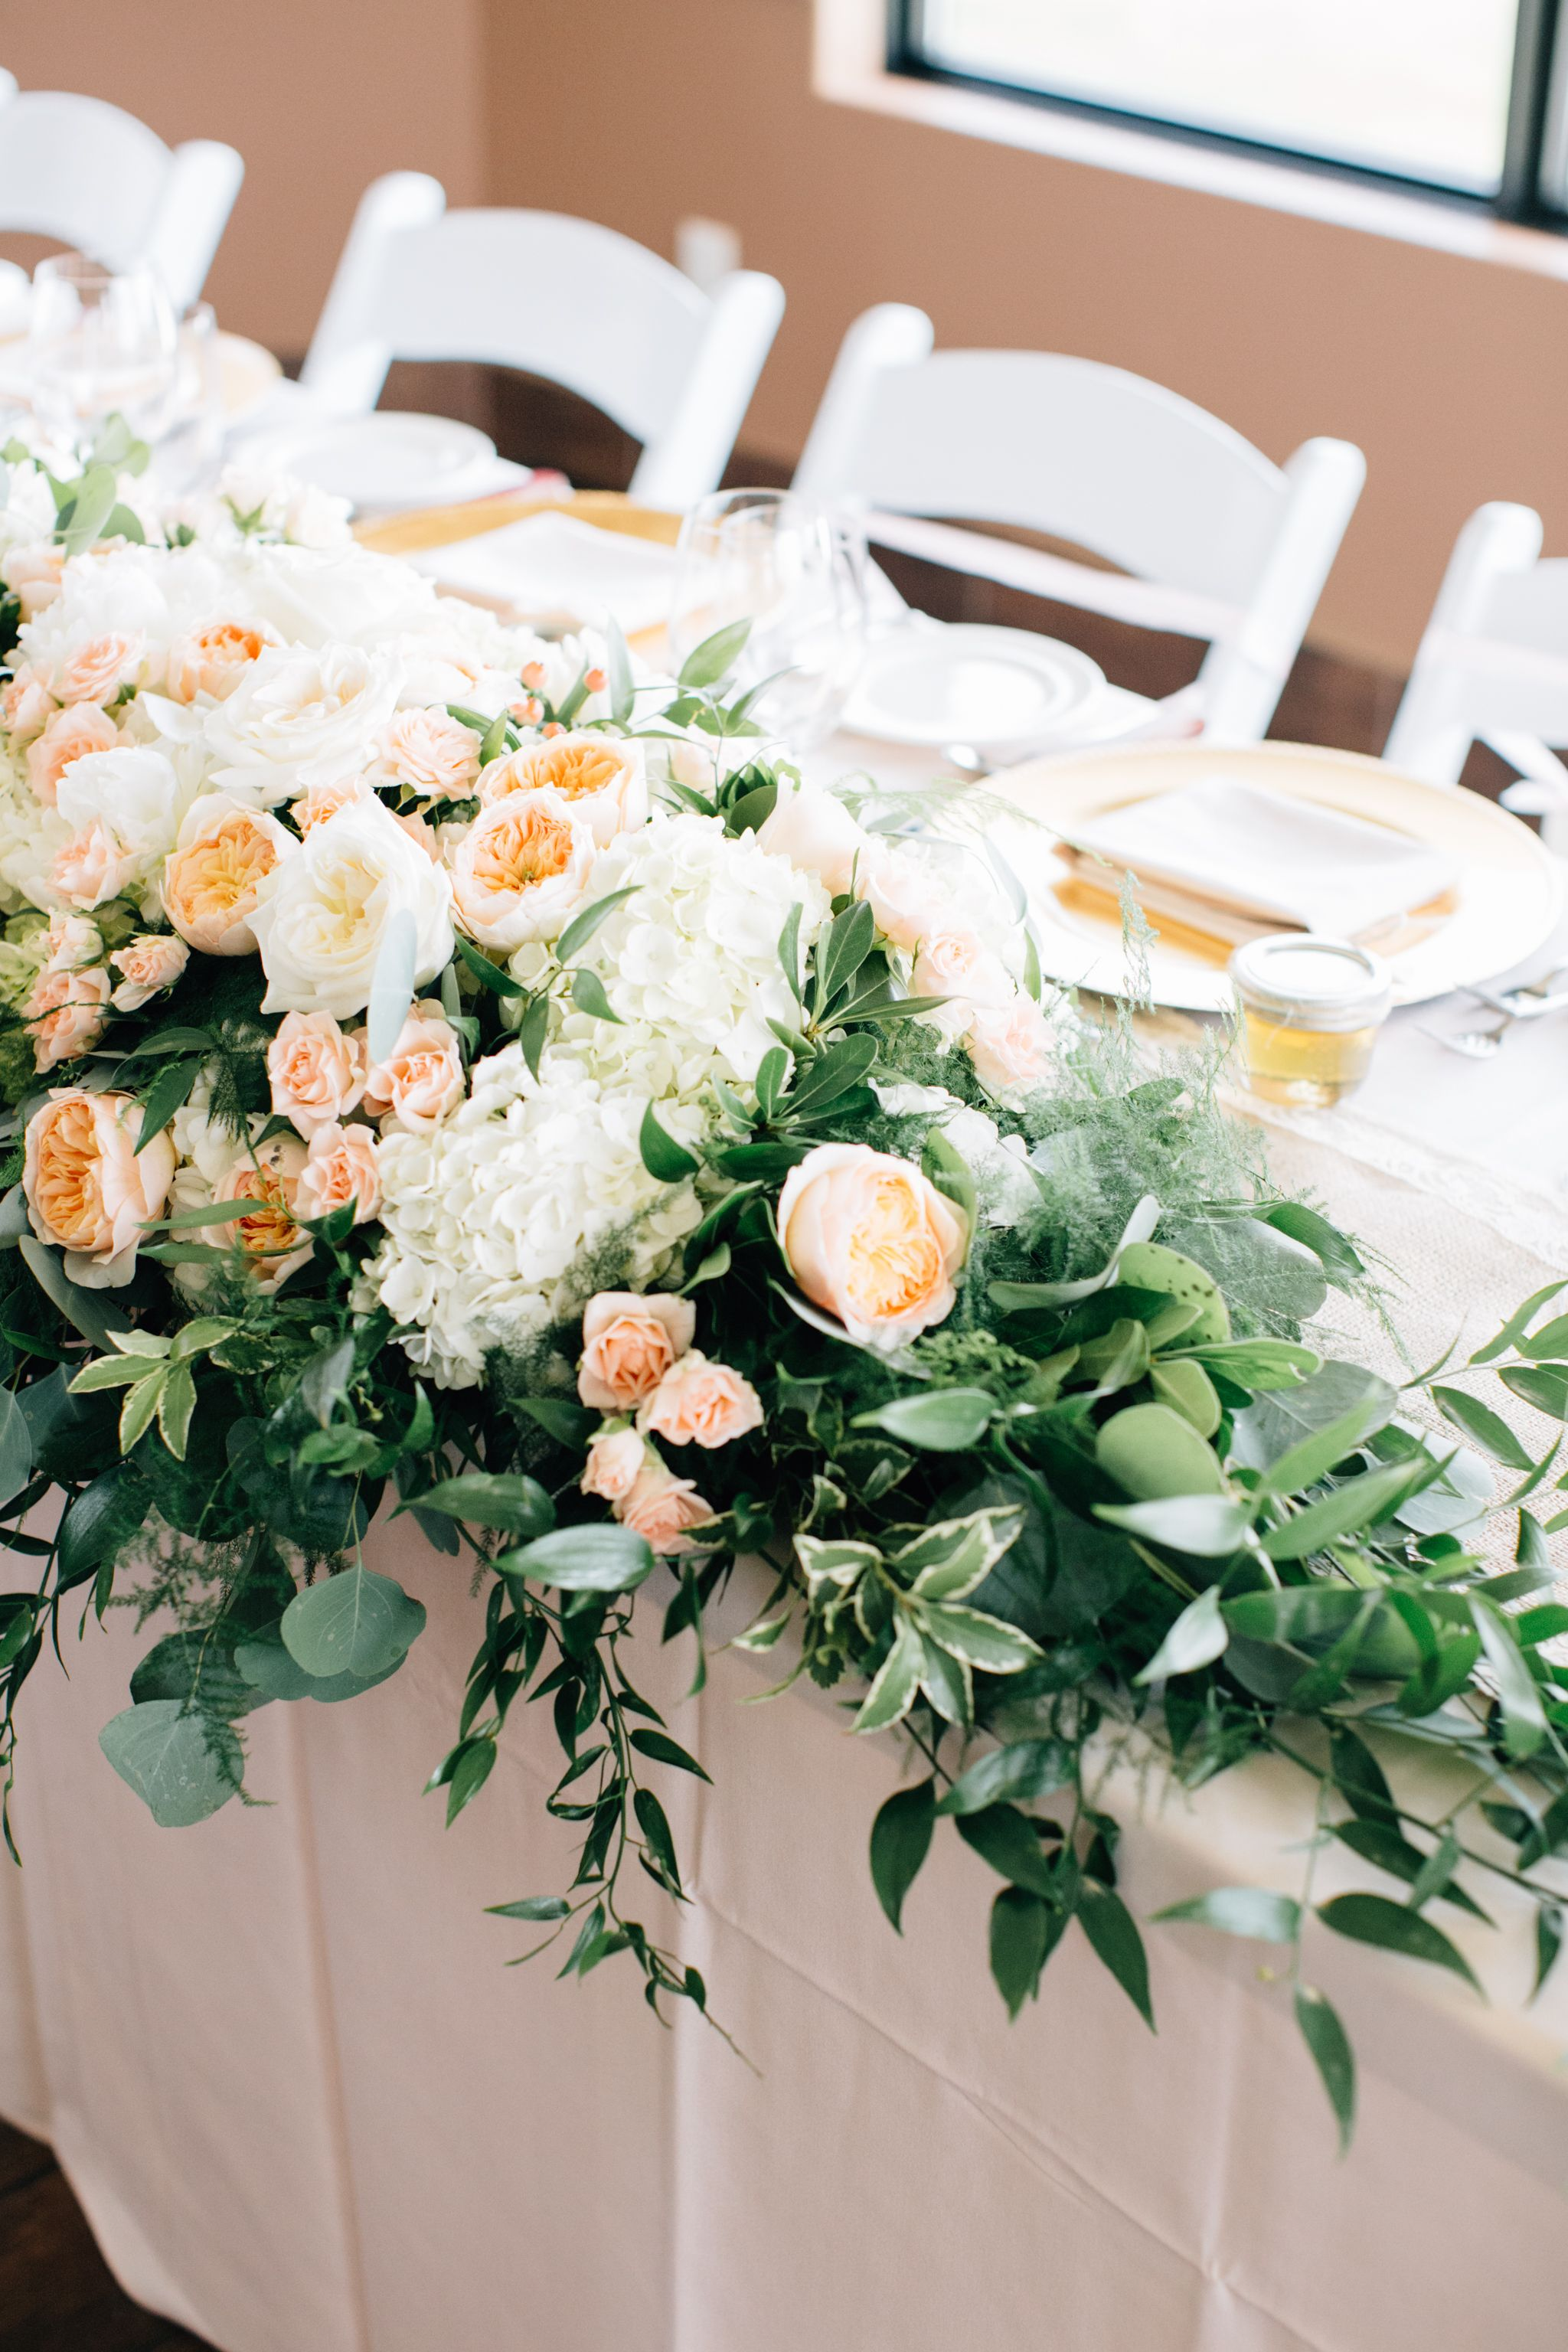 Head Table Floral Decor With Five Feet Of Lush White Hydrangea